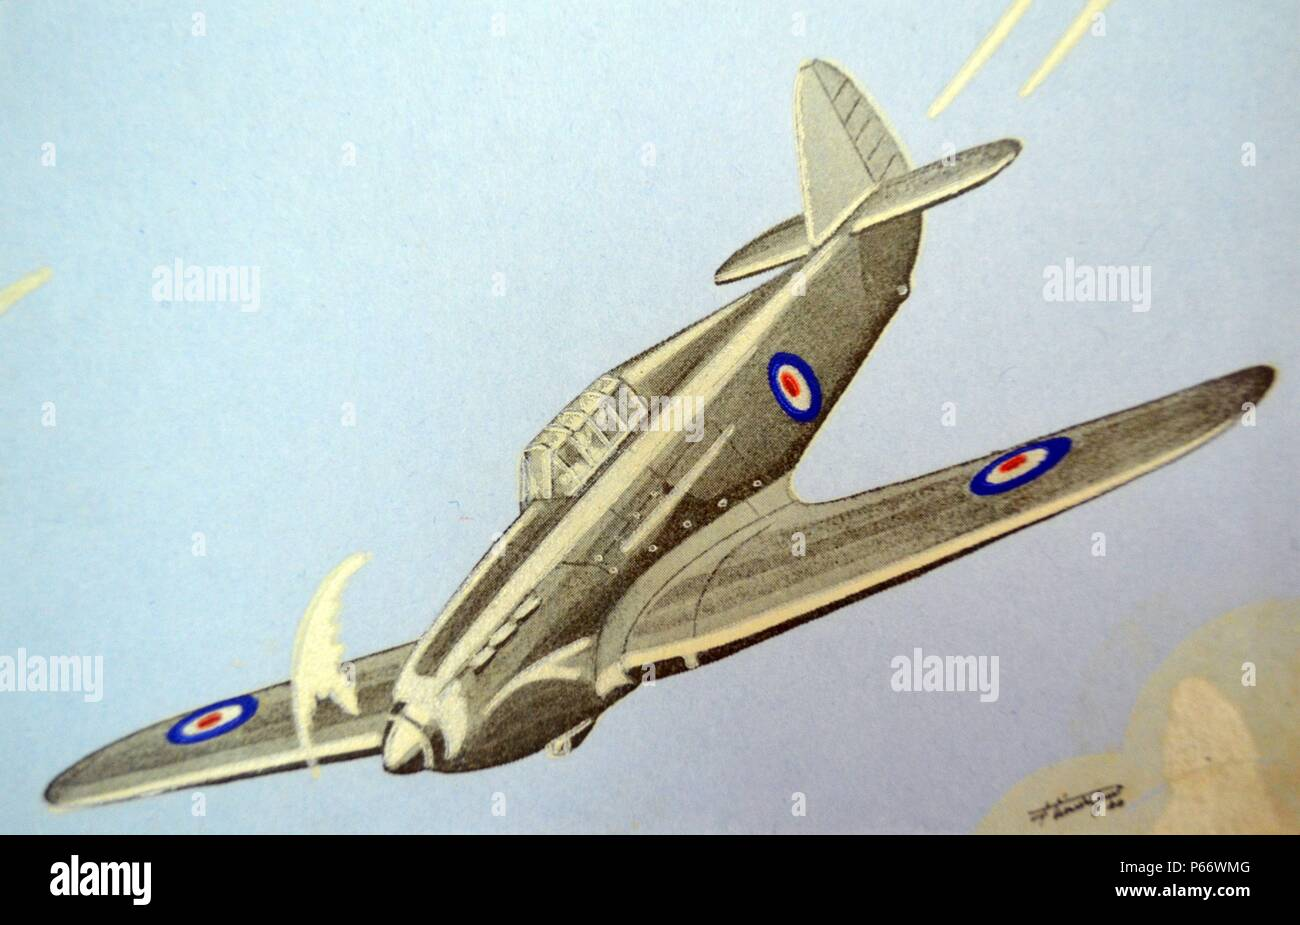 World War Two: French postcard depicting a British RAF Hawker Hurricane aircraft. During the 11 days of fighting in France and over Dunkirk on 10â€î21 May 1940, Hurricane pilots claimed 499 kills and 123 probable. Contemporary German records, examined post-war, attribute 299 Luftwaffe aircraft destroyed and 65 seriously damaged by RAF fighters.[37] When the last Hurricanes left France, on 21 June, of the 452 Hawker fighters engaged during the Blitzkrieg, only 66 came back to Great Britain[38] with 178 abandoned at the airfields of Merville, Abbeville, Lille/Seclin and other bases.[36] - Stock Image